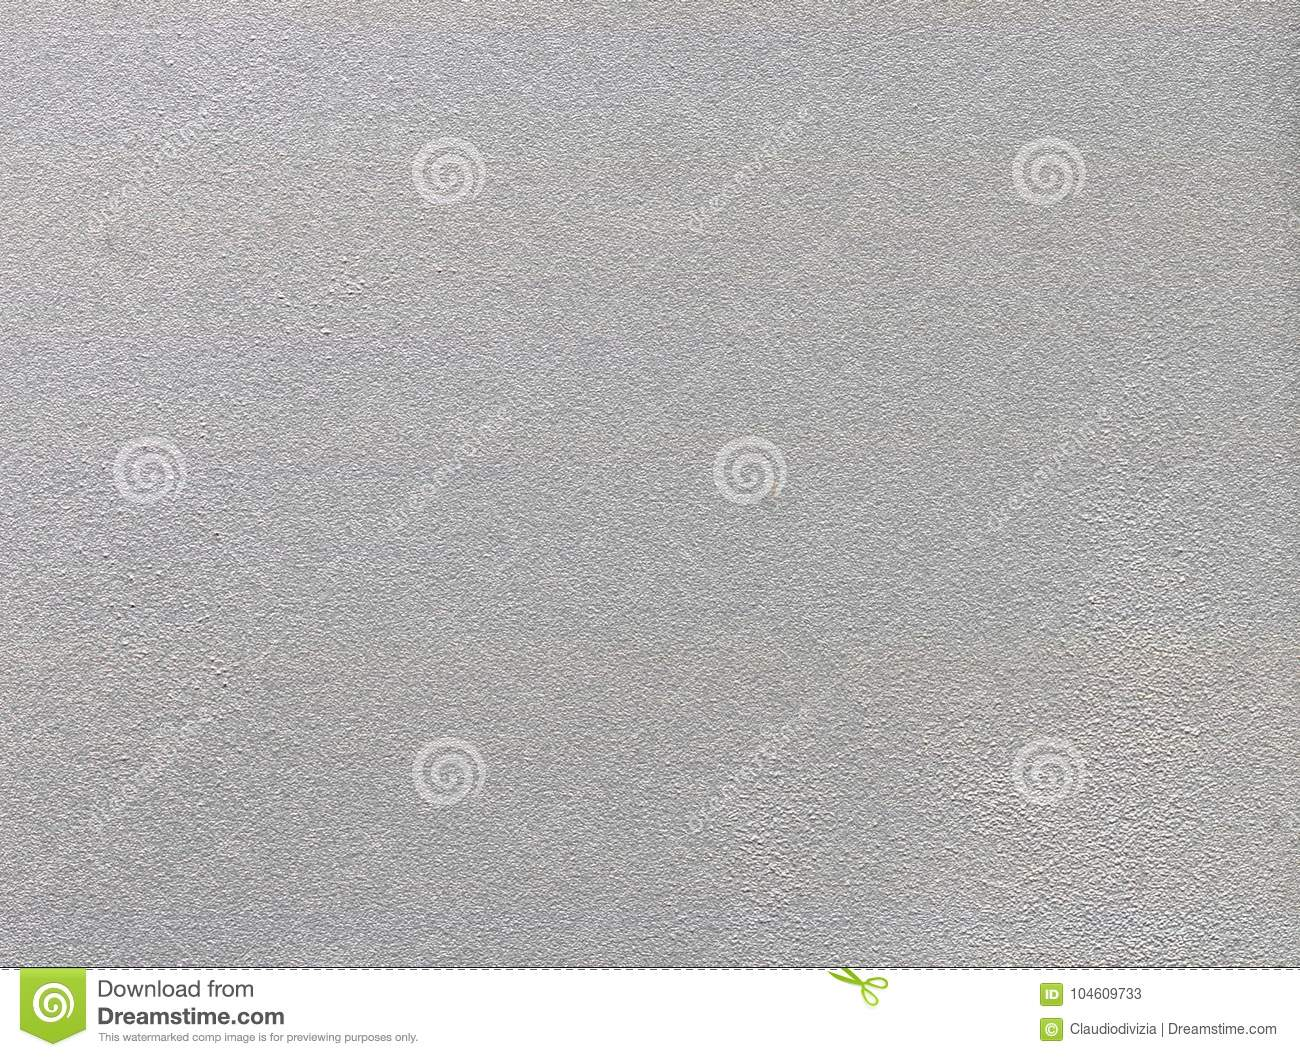 metal panel texture. Grey Metal Panel Texture Background. Gray, Textured. Royalty-Free Stock Photo. Download